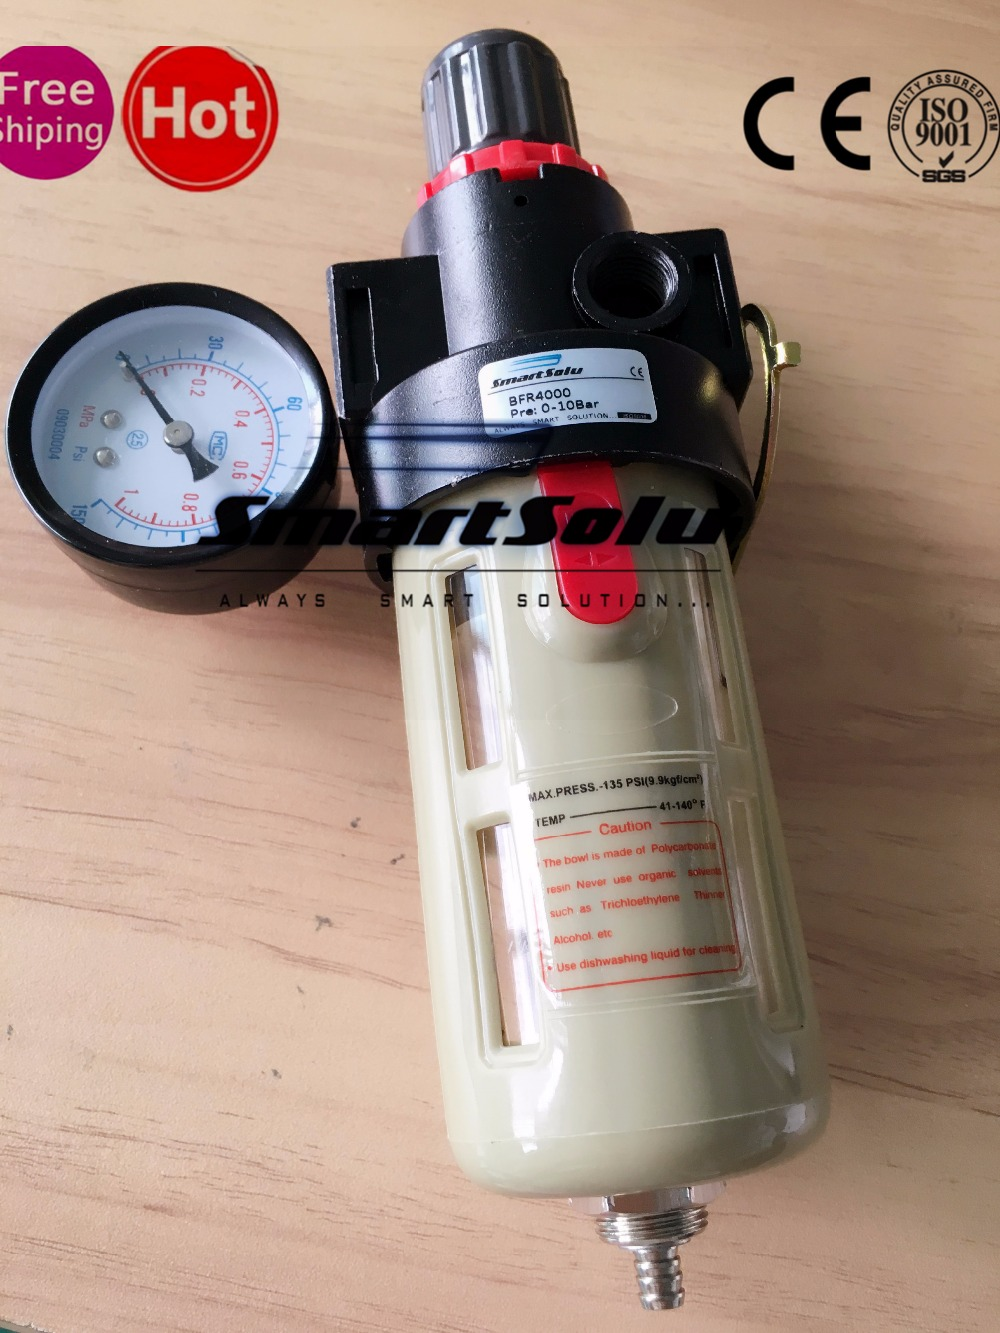 "1/2 inch"" Airtac BFR 4000 Source Treatment Unit , Pneumatic Air Filter Regulator With Pressure Gauge + Cover"""